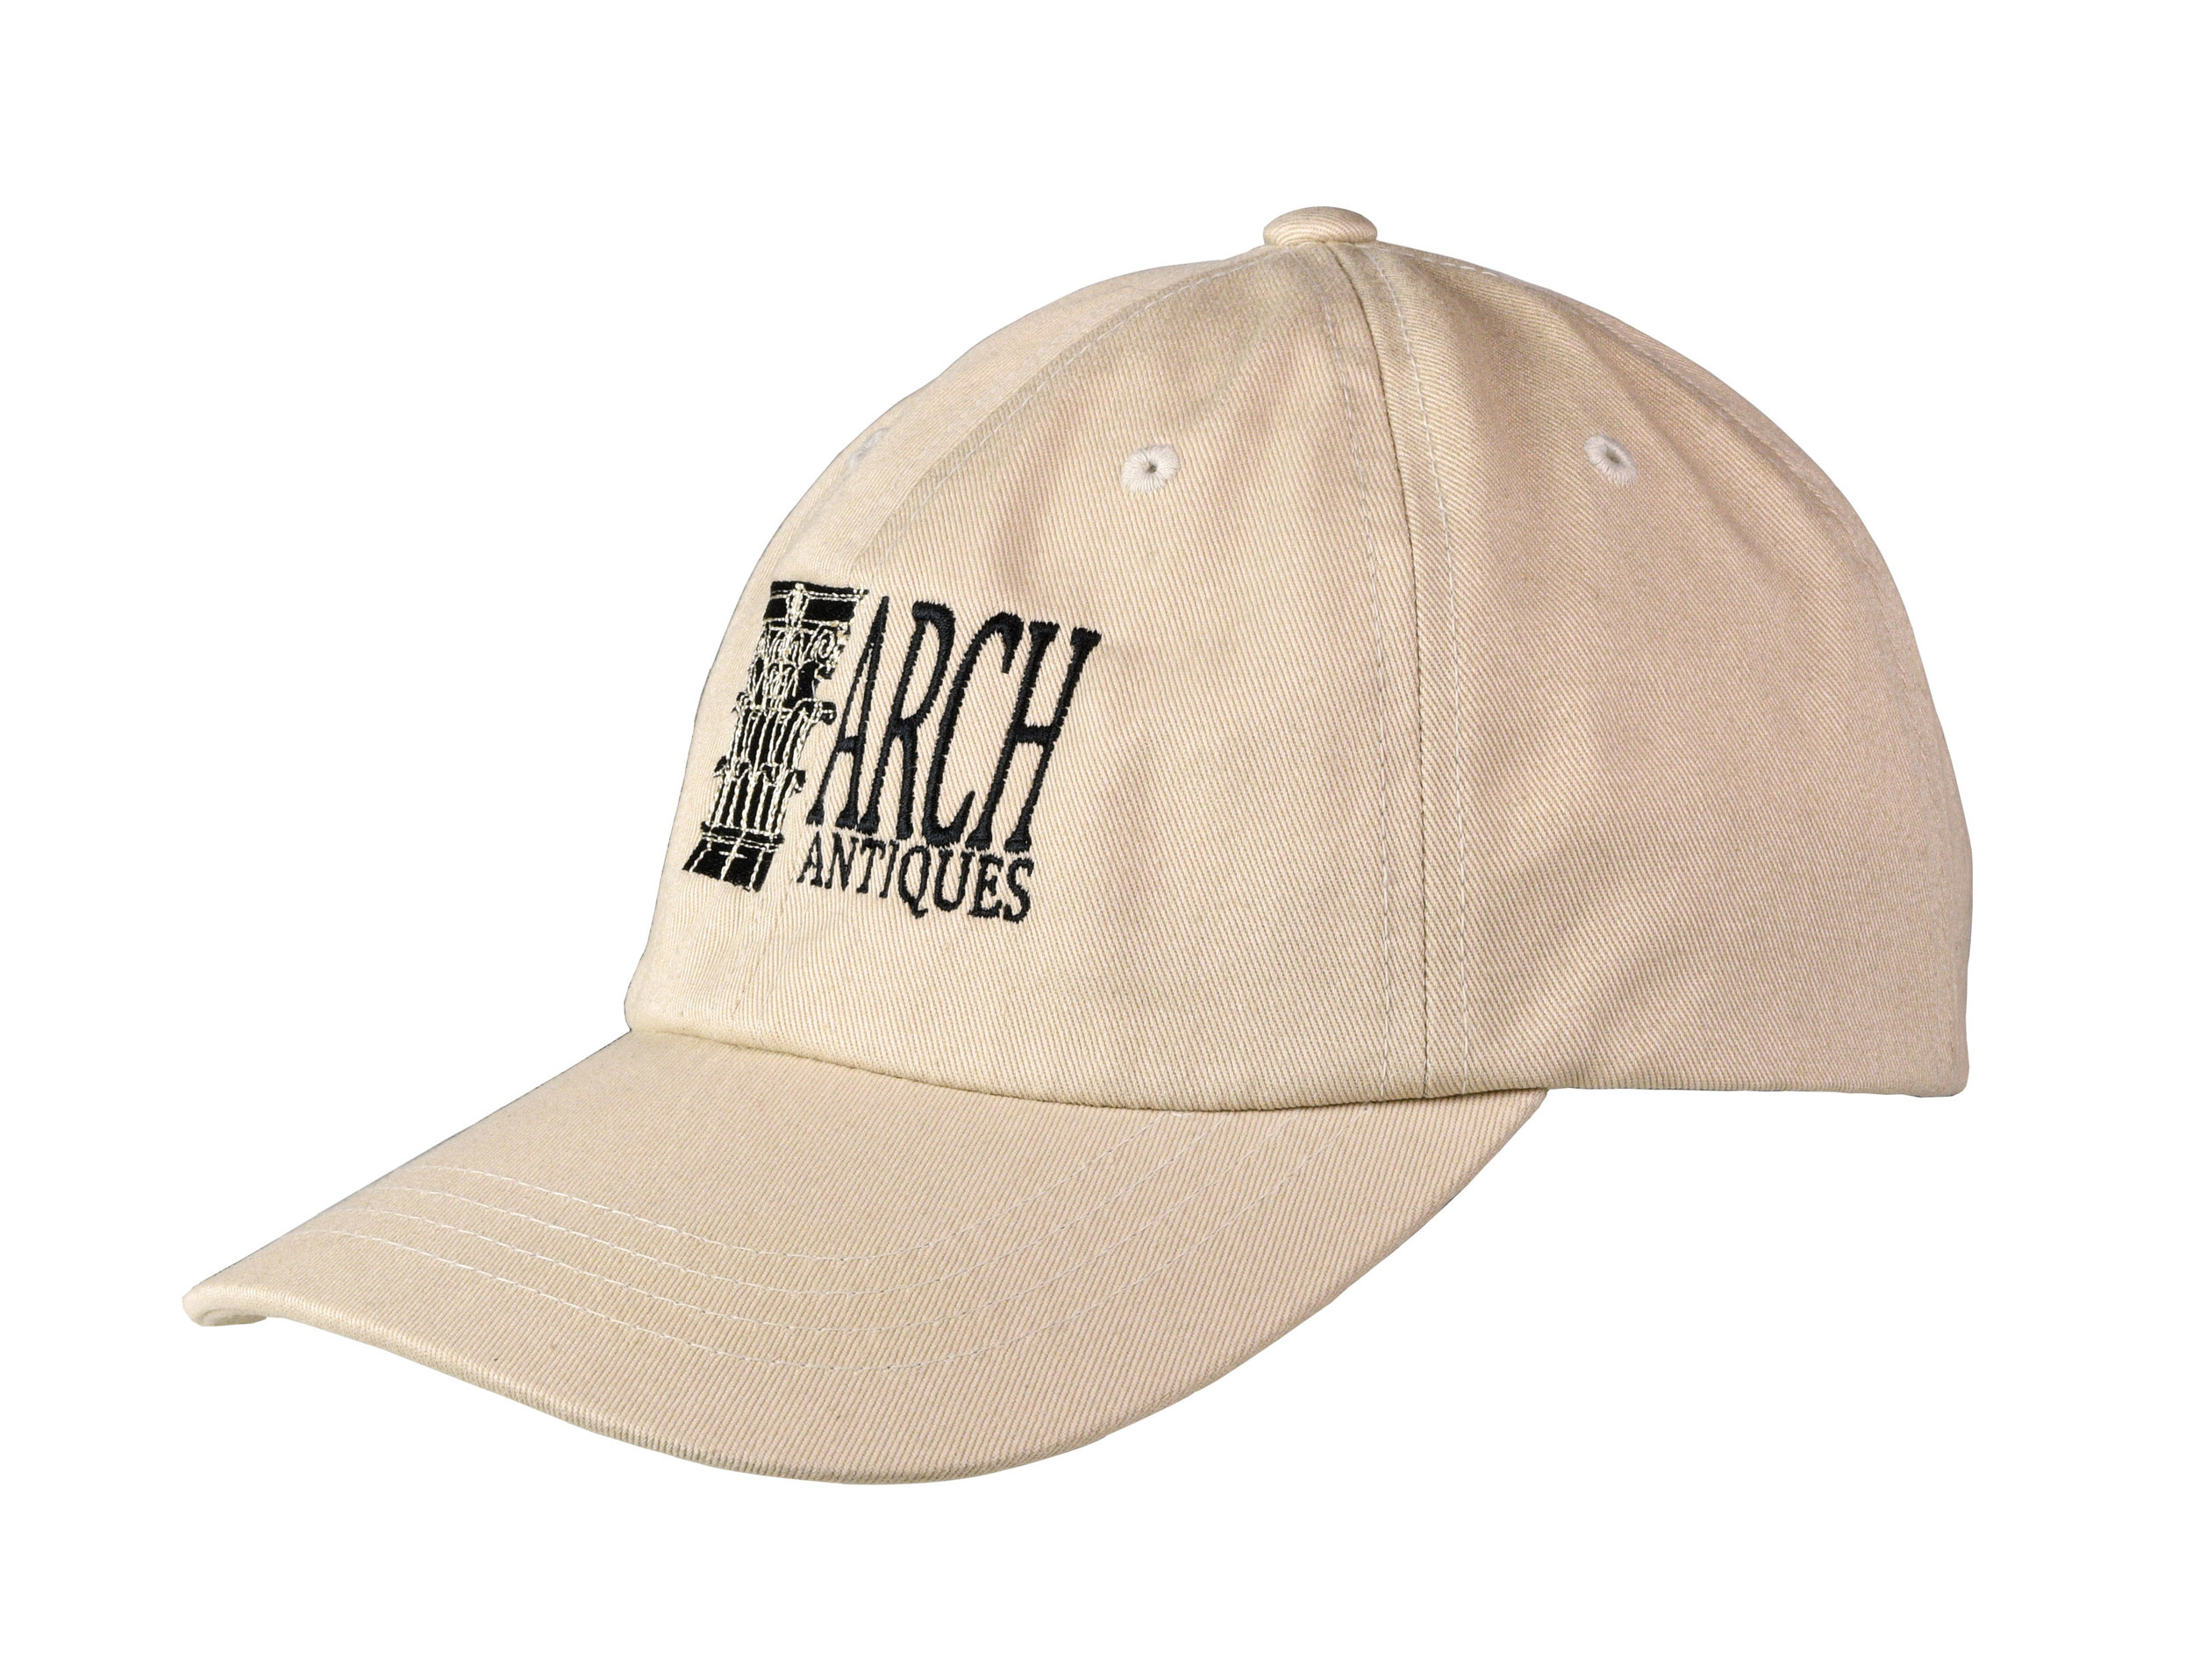 hat-tan-full-angle.jpg